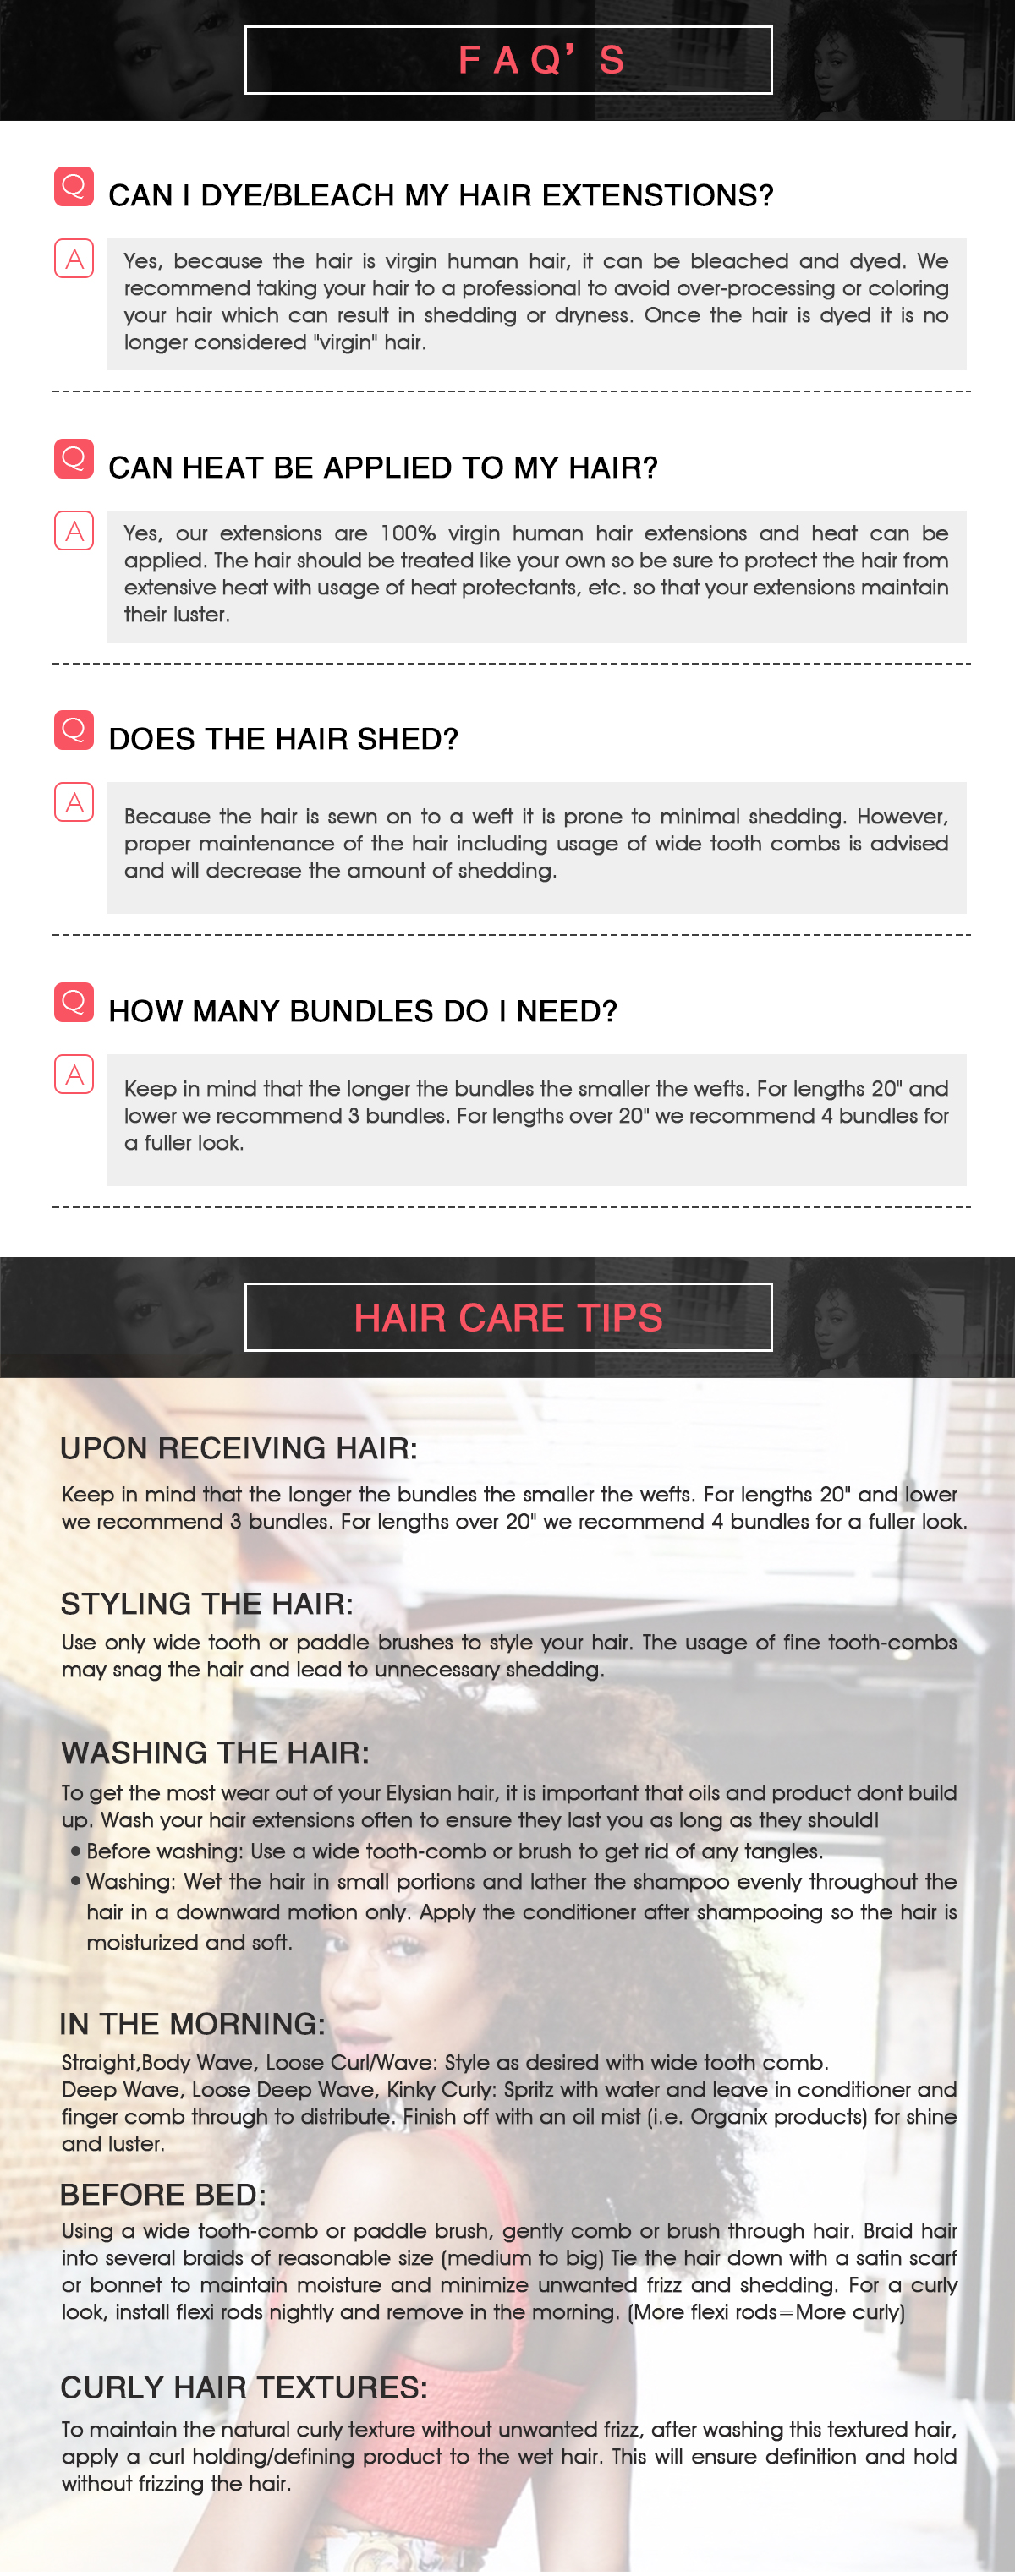 FAQ and Hair Care Tips